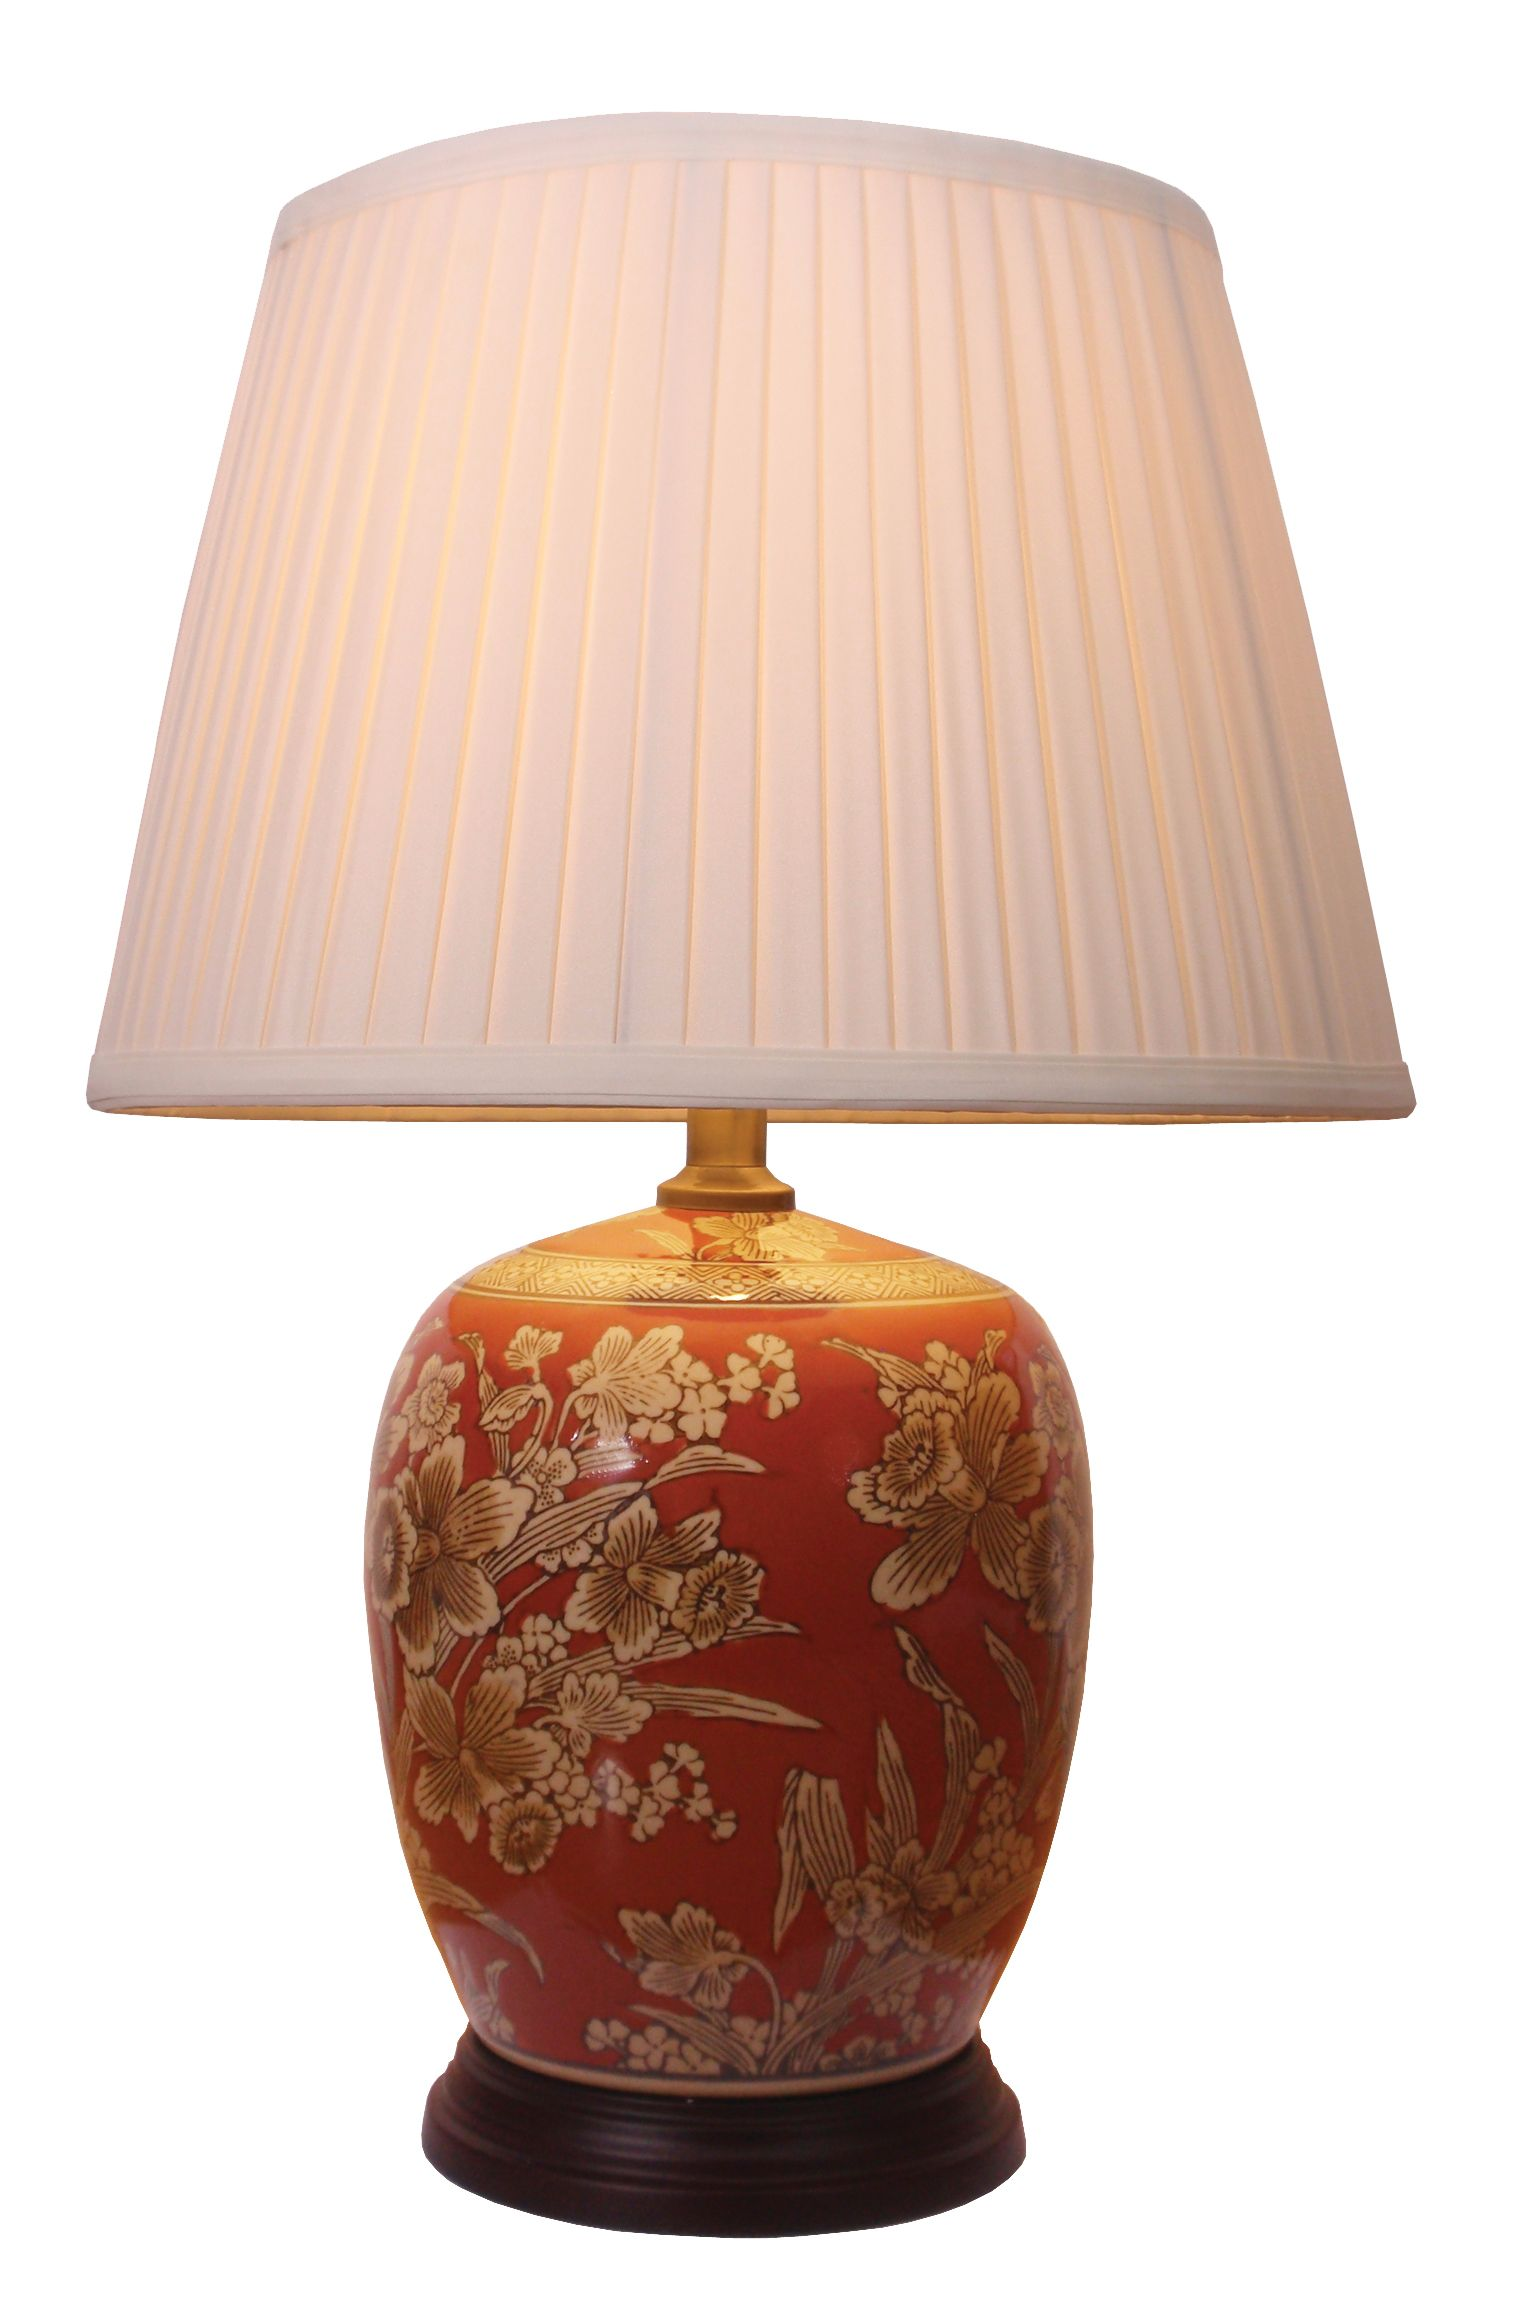 Chinese porcelain jar table lamp set in a lovely floral theme10 chinese porcelain jar table lamp set in a lovely floral theme10 inch 25cm geotapseo Gallery